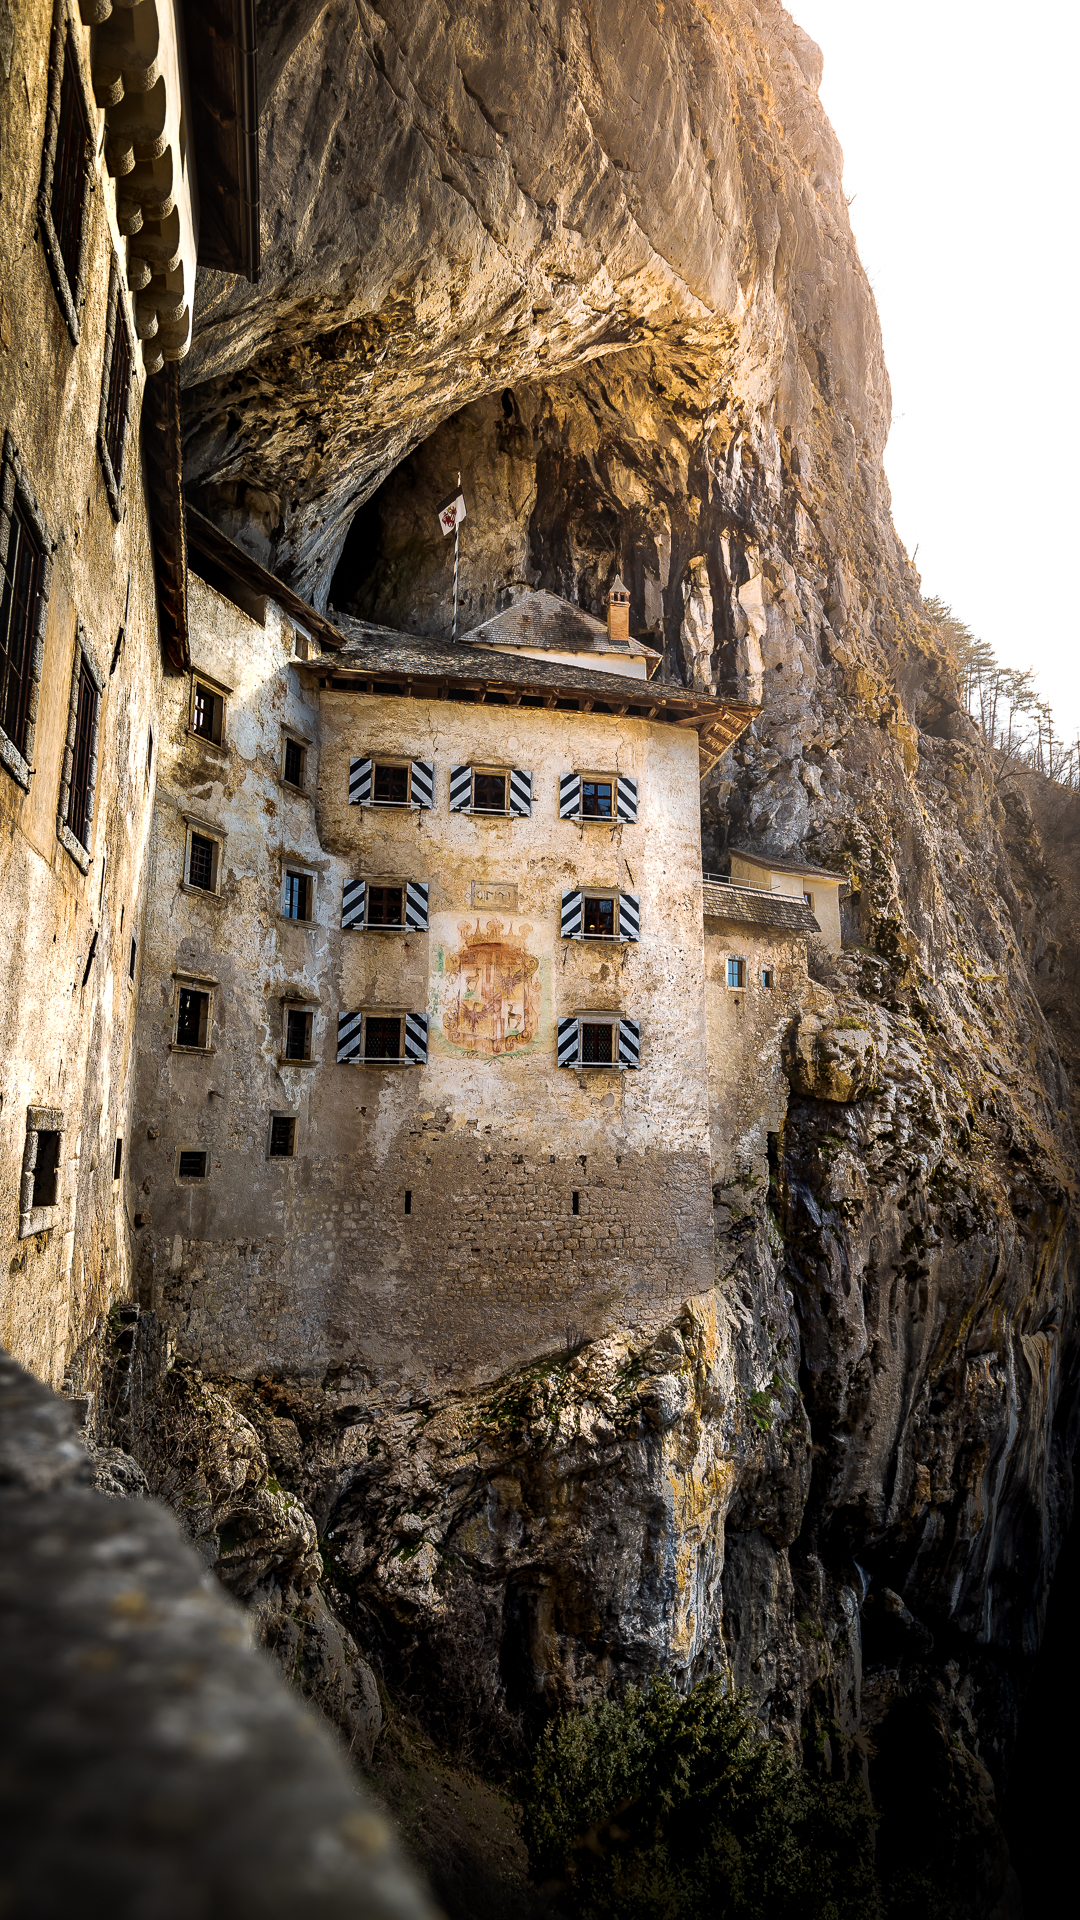 Predjama Castle in all its medieval glory.